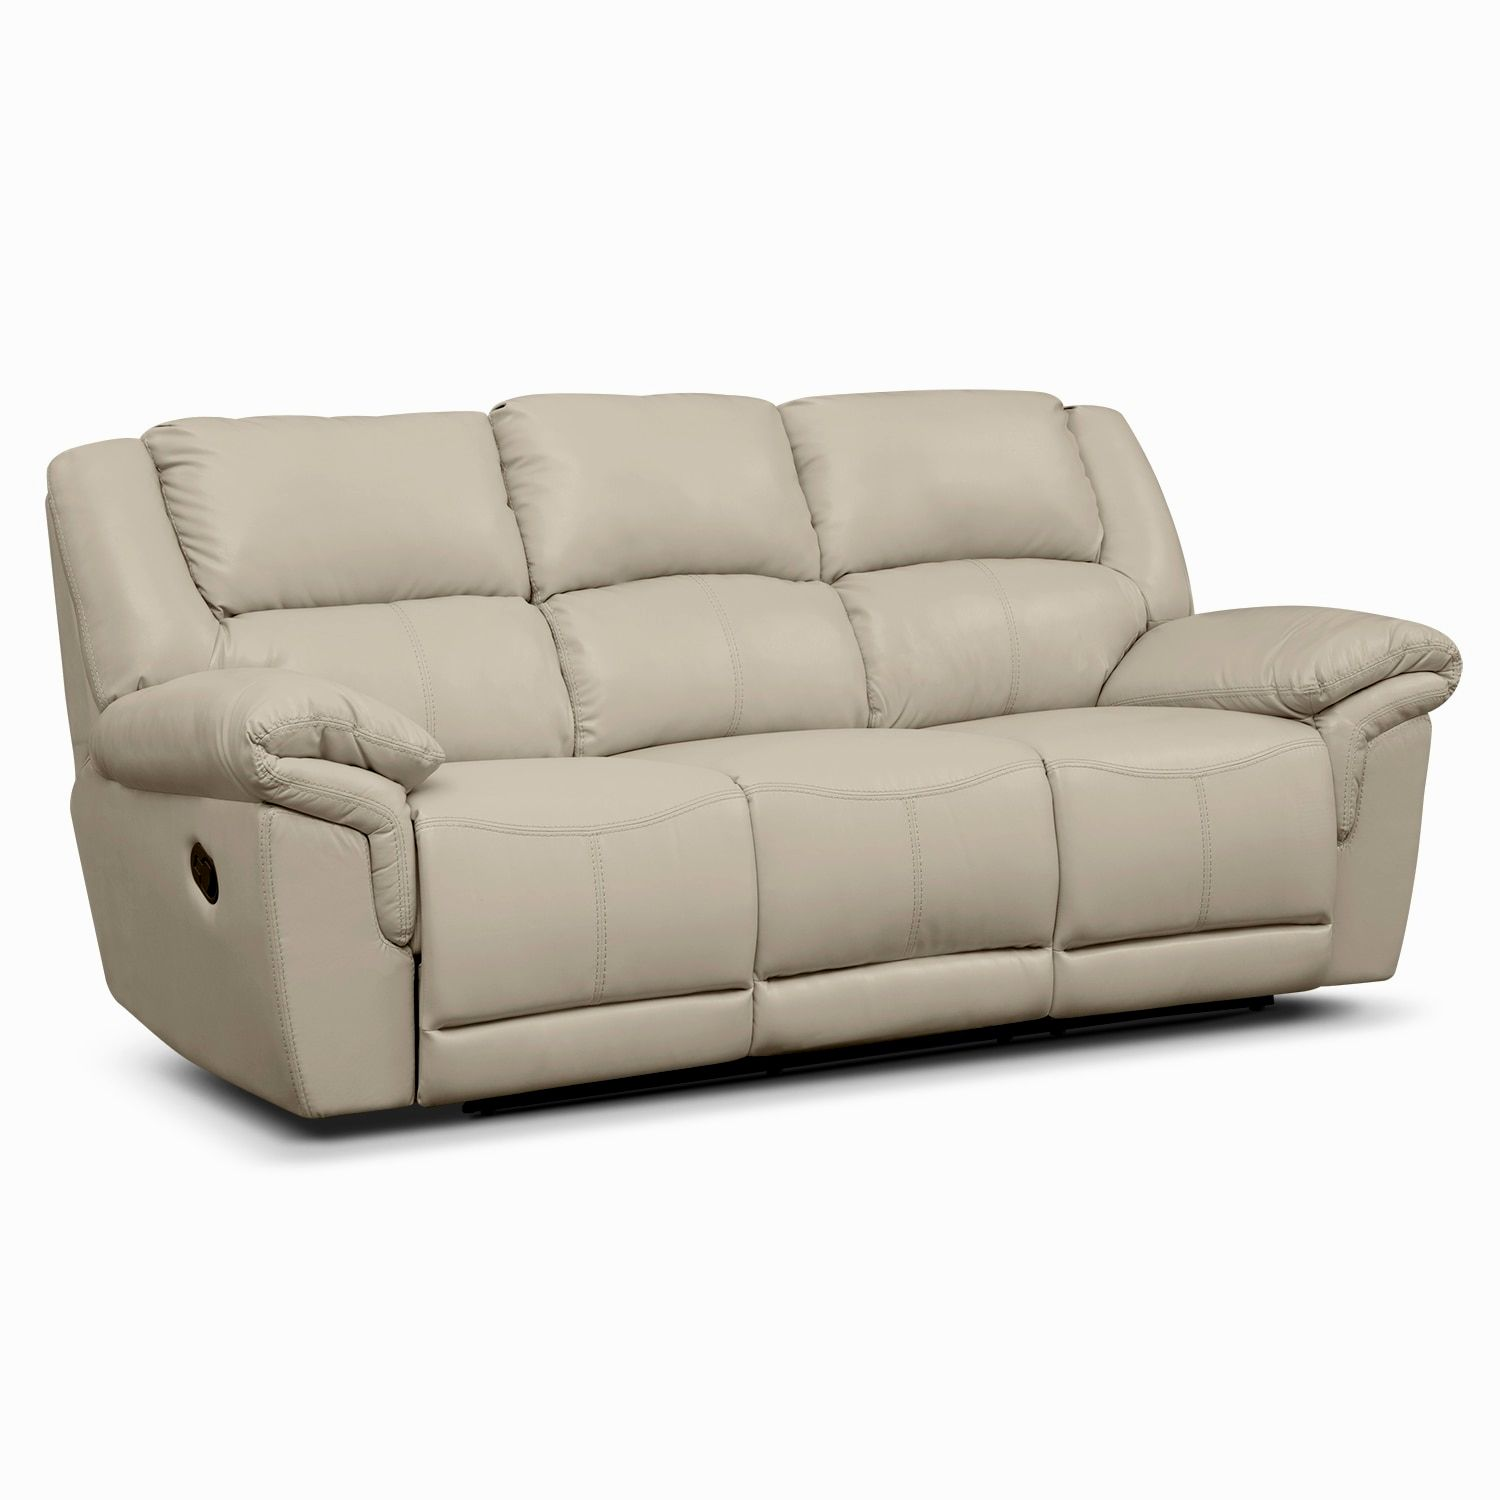 best reclining sofa sets online-Fascinating Reclining sofa Sets Pattern